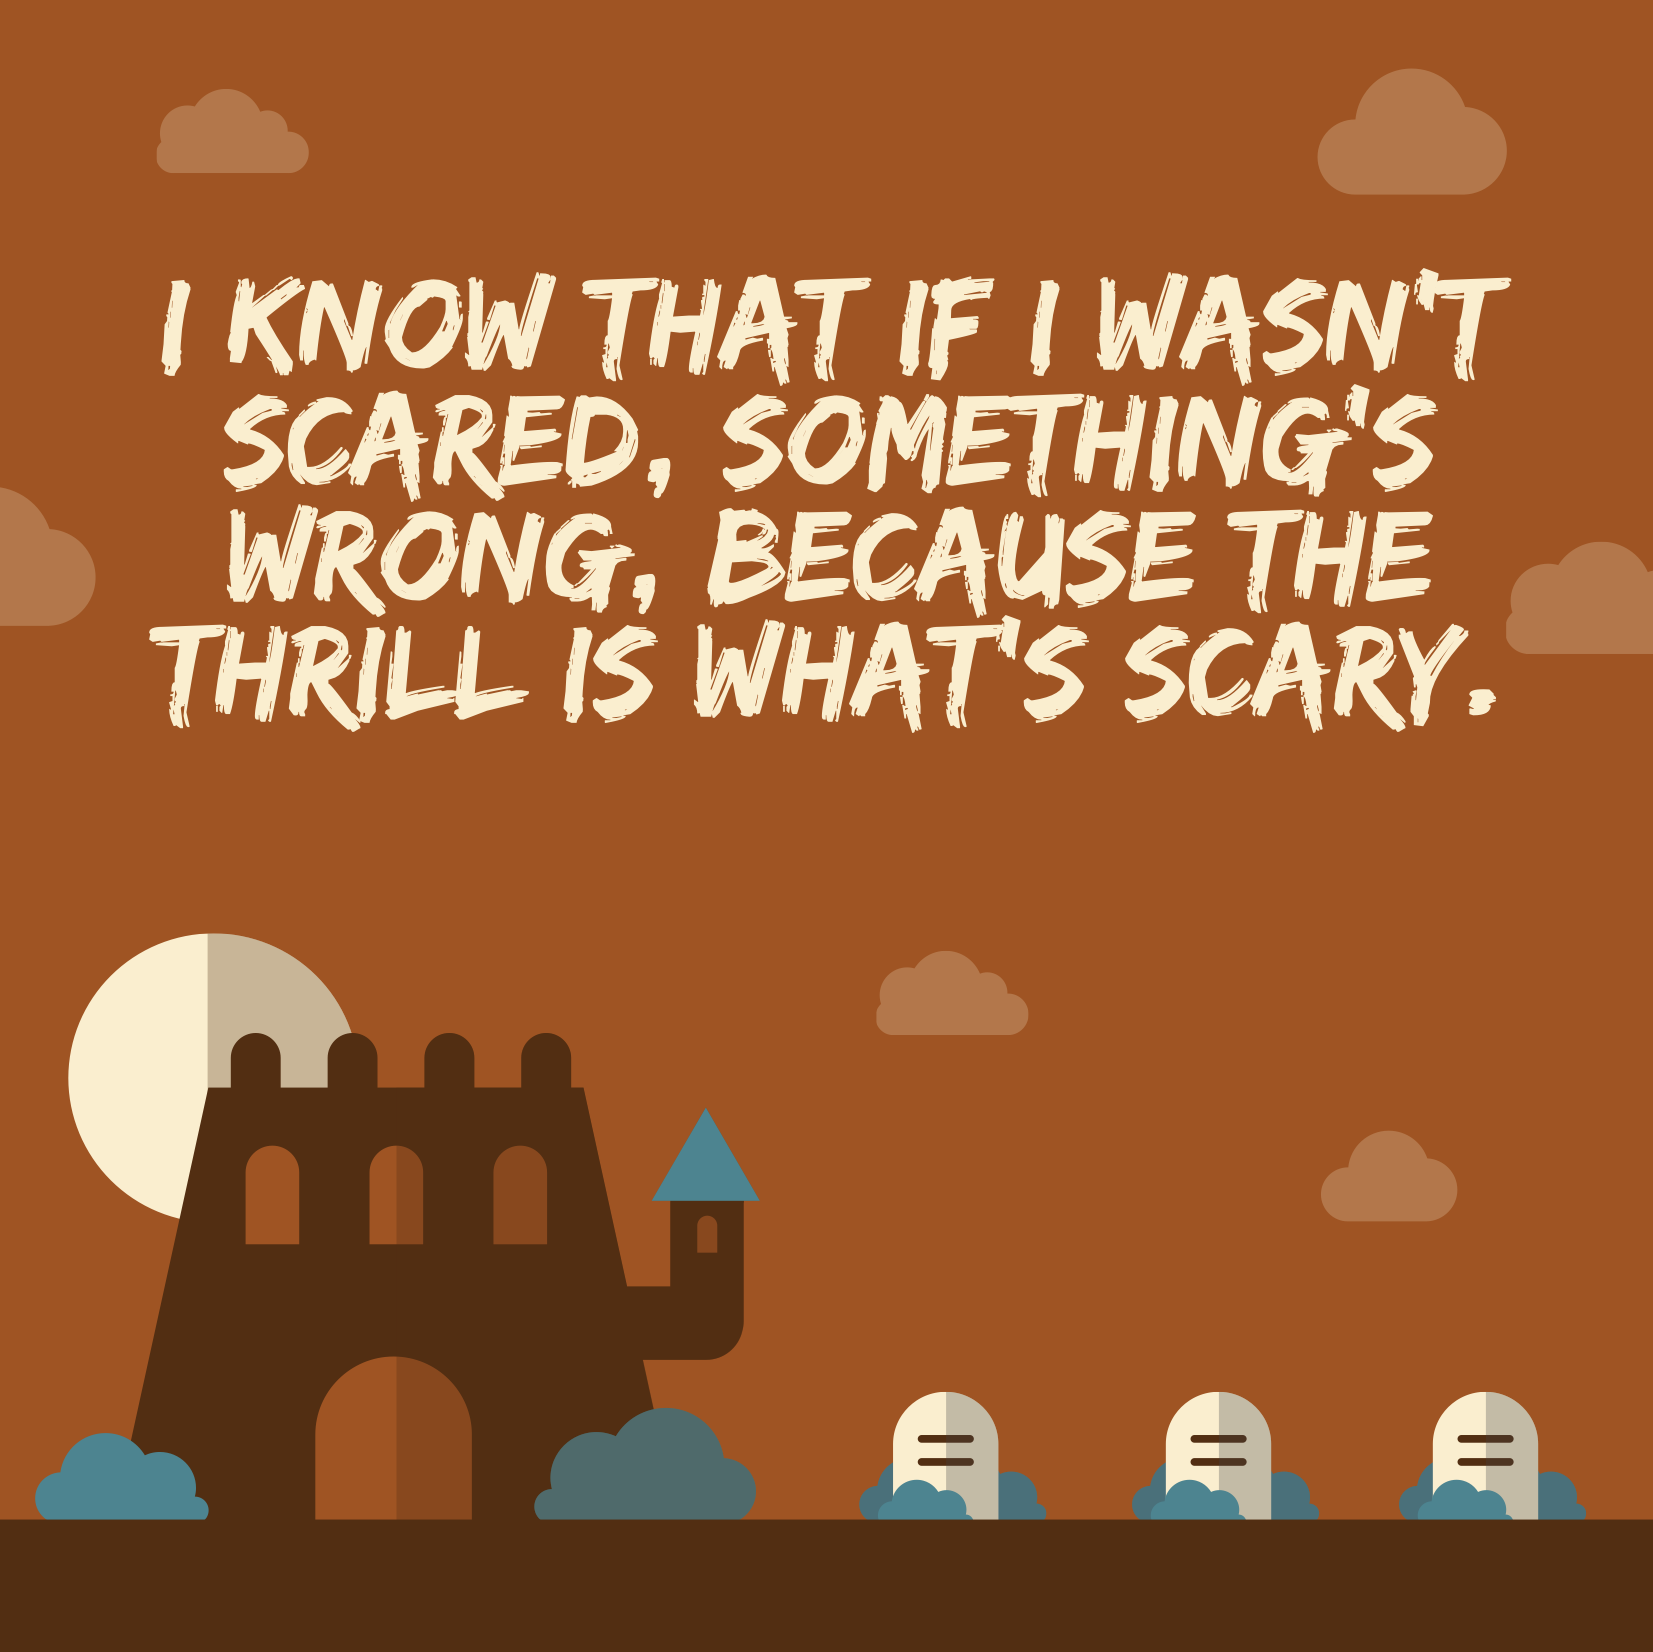 I know that if I wasn't scared, something's wrong, because the thrill is what's scary.